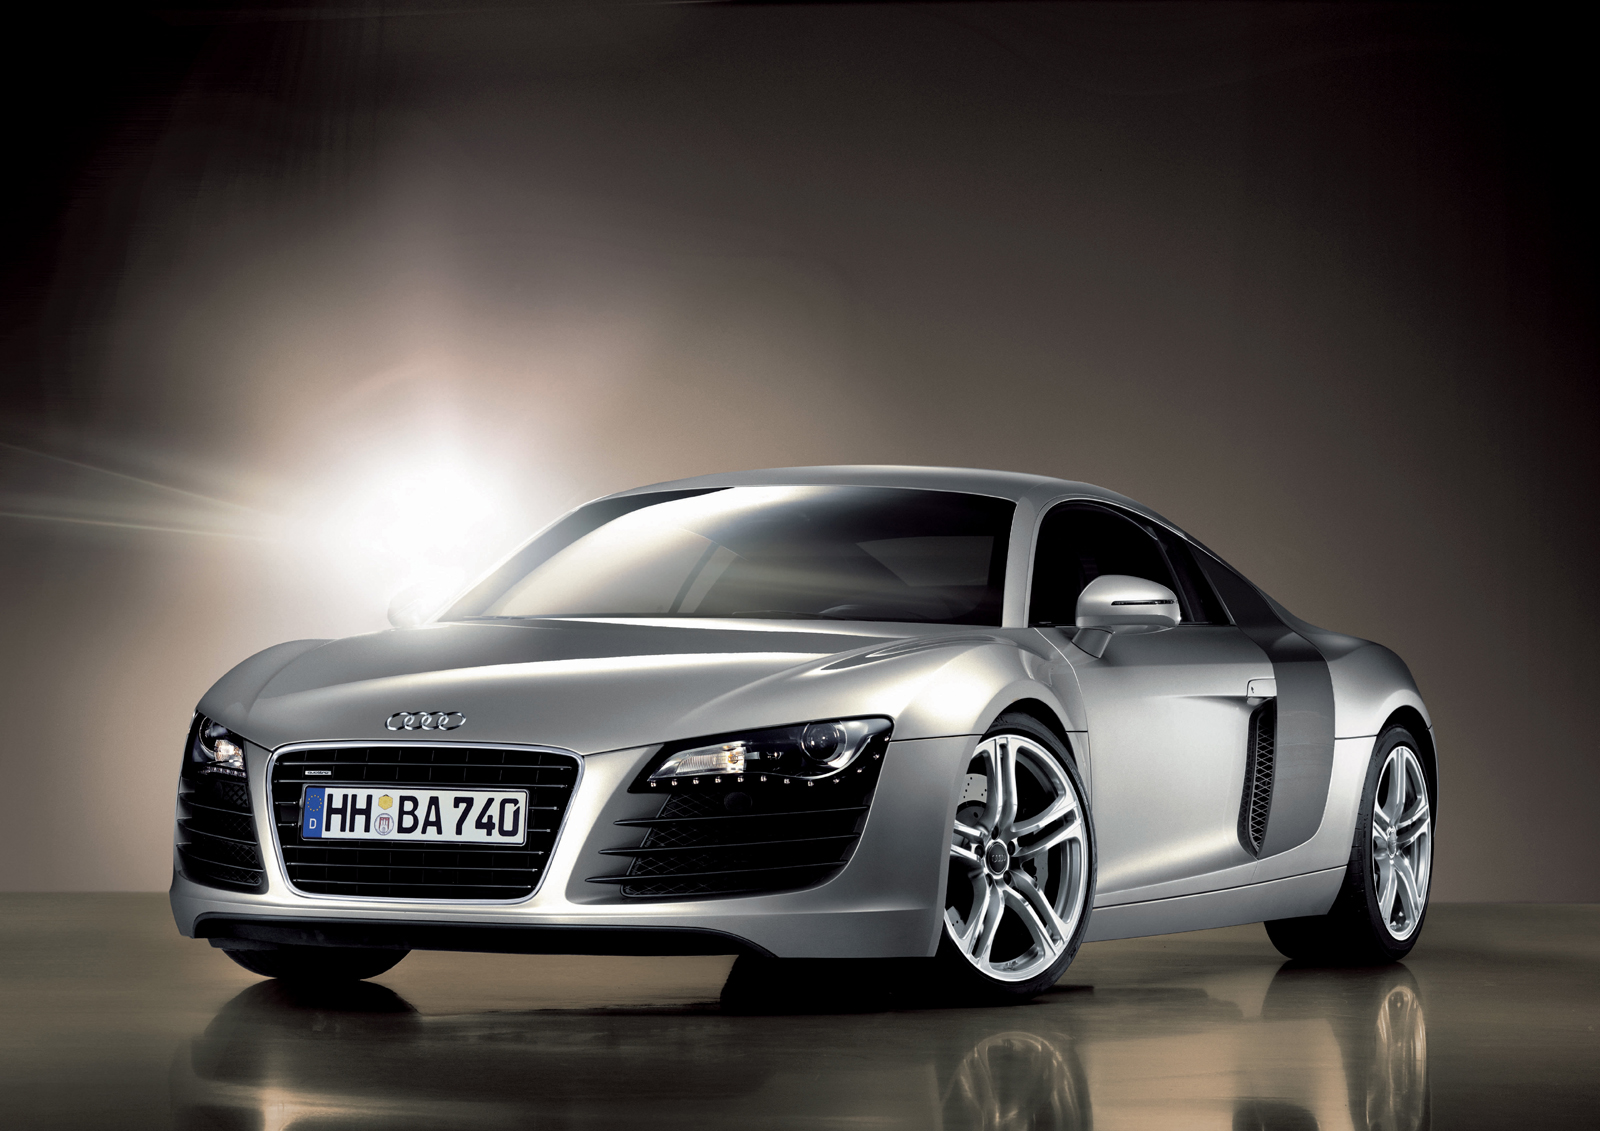 2011 Audi R8 Spyder Another Hottest Entry In Sports Car Arena